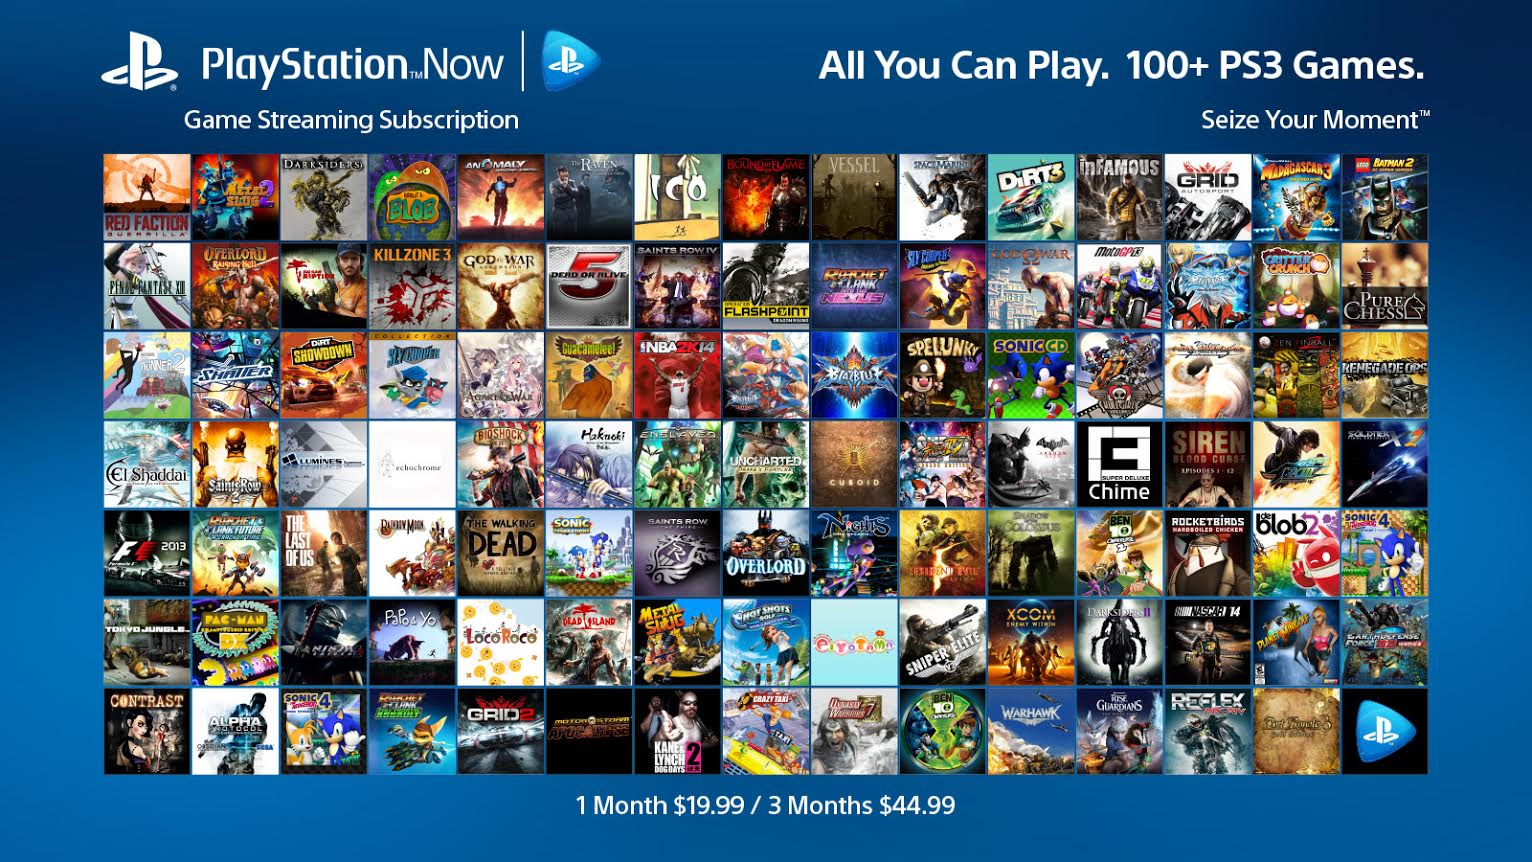 PlayStation Now all-you-can-play subscriptions hit next week for $20 a month, $45 for three months